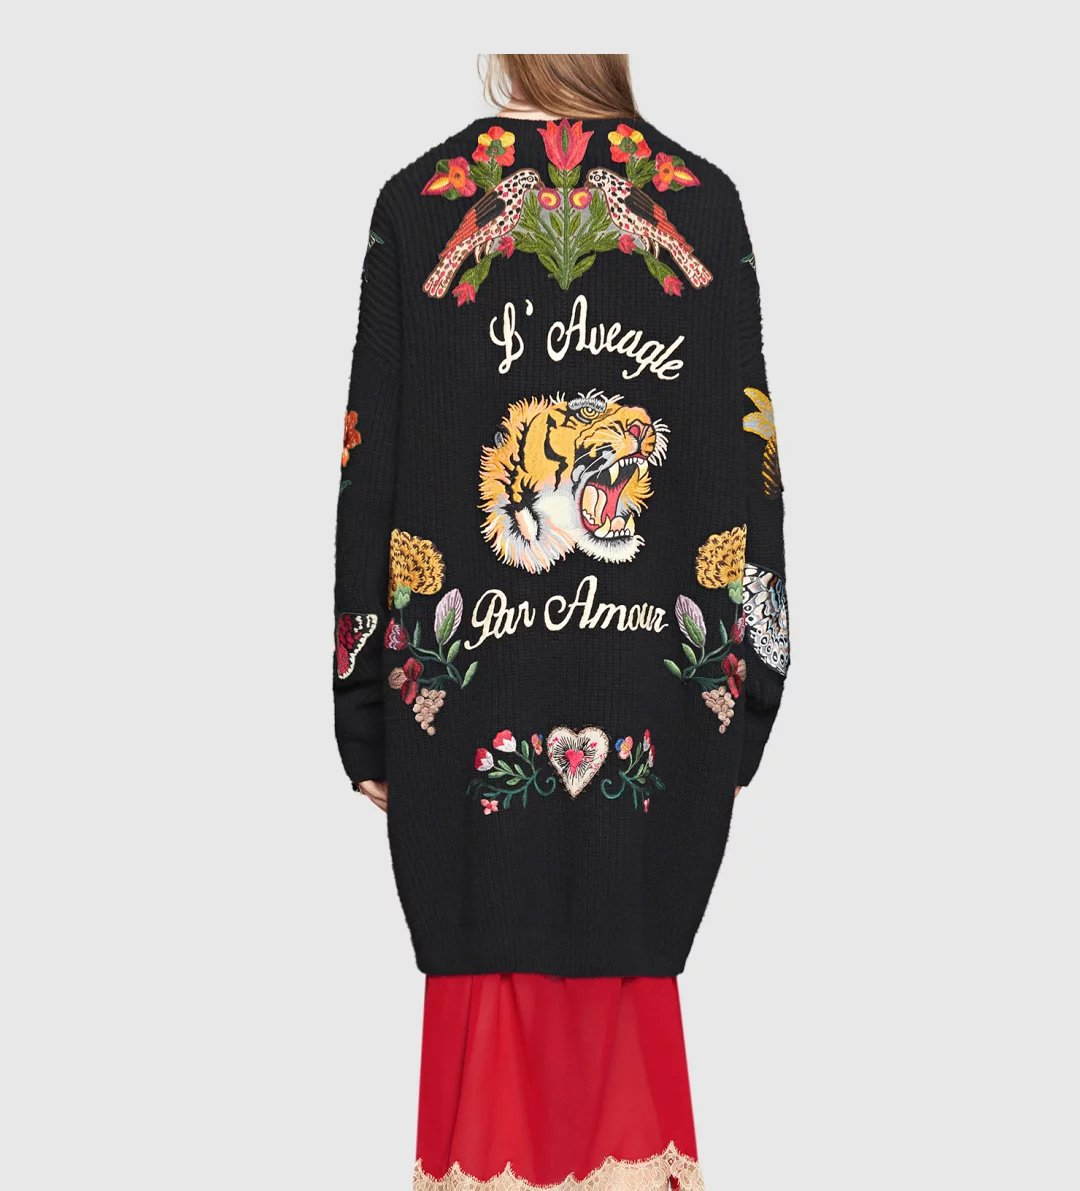 jacket Women Cardigans Vintage Tiger Embroidery Knitted Sweater Outwear Blouson Femme Big Size Long Casual Thicken